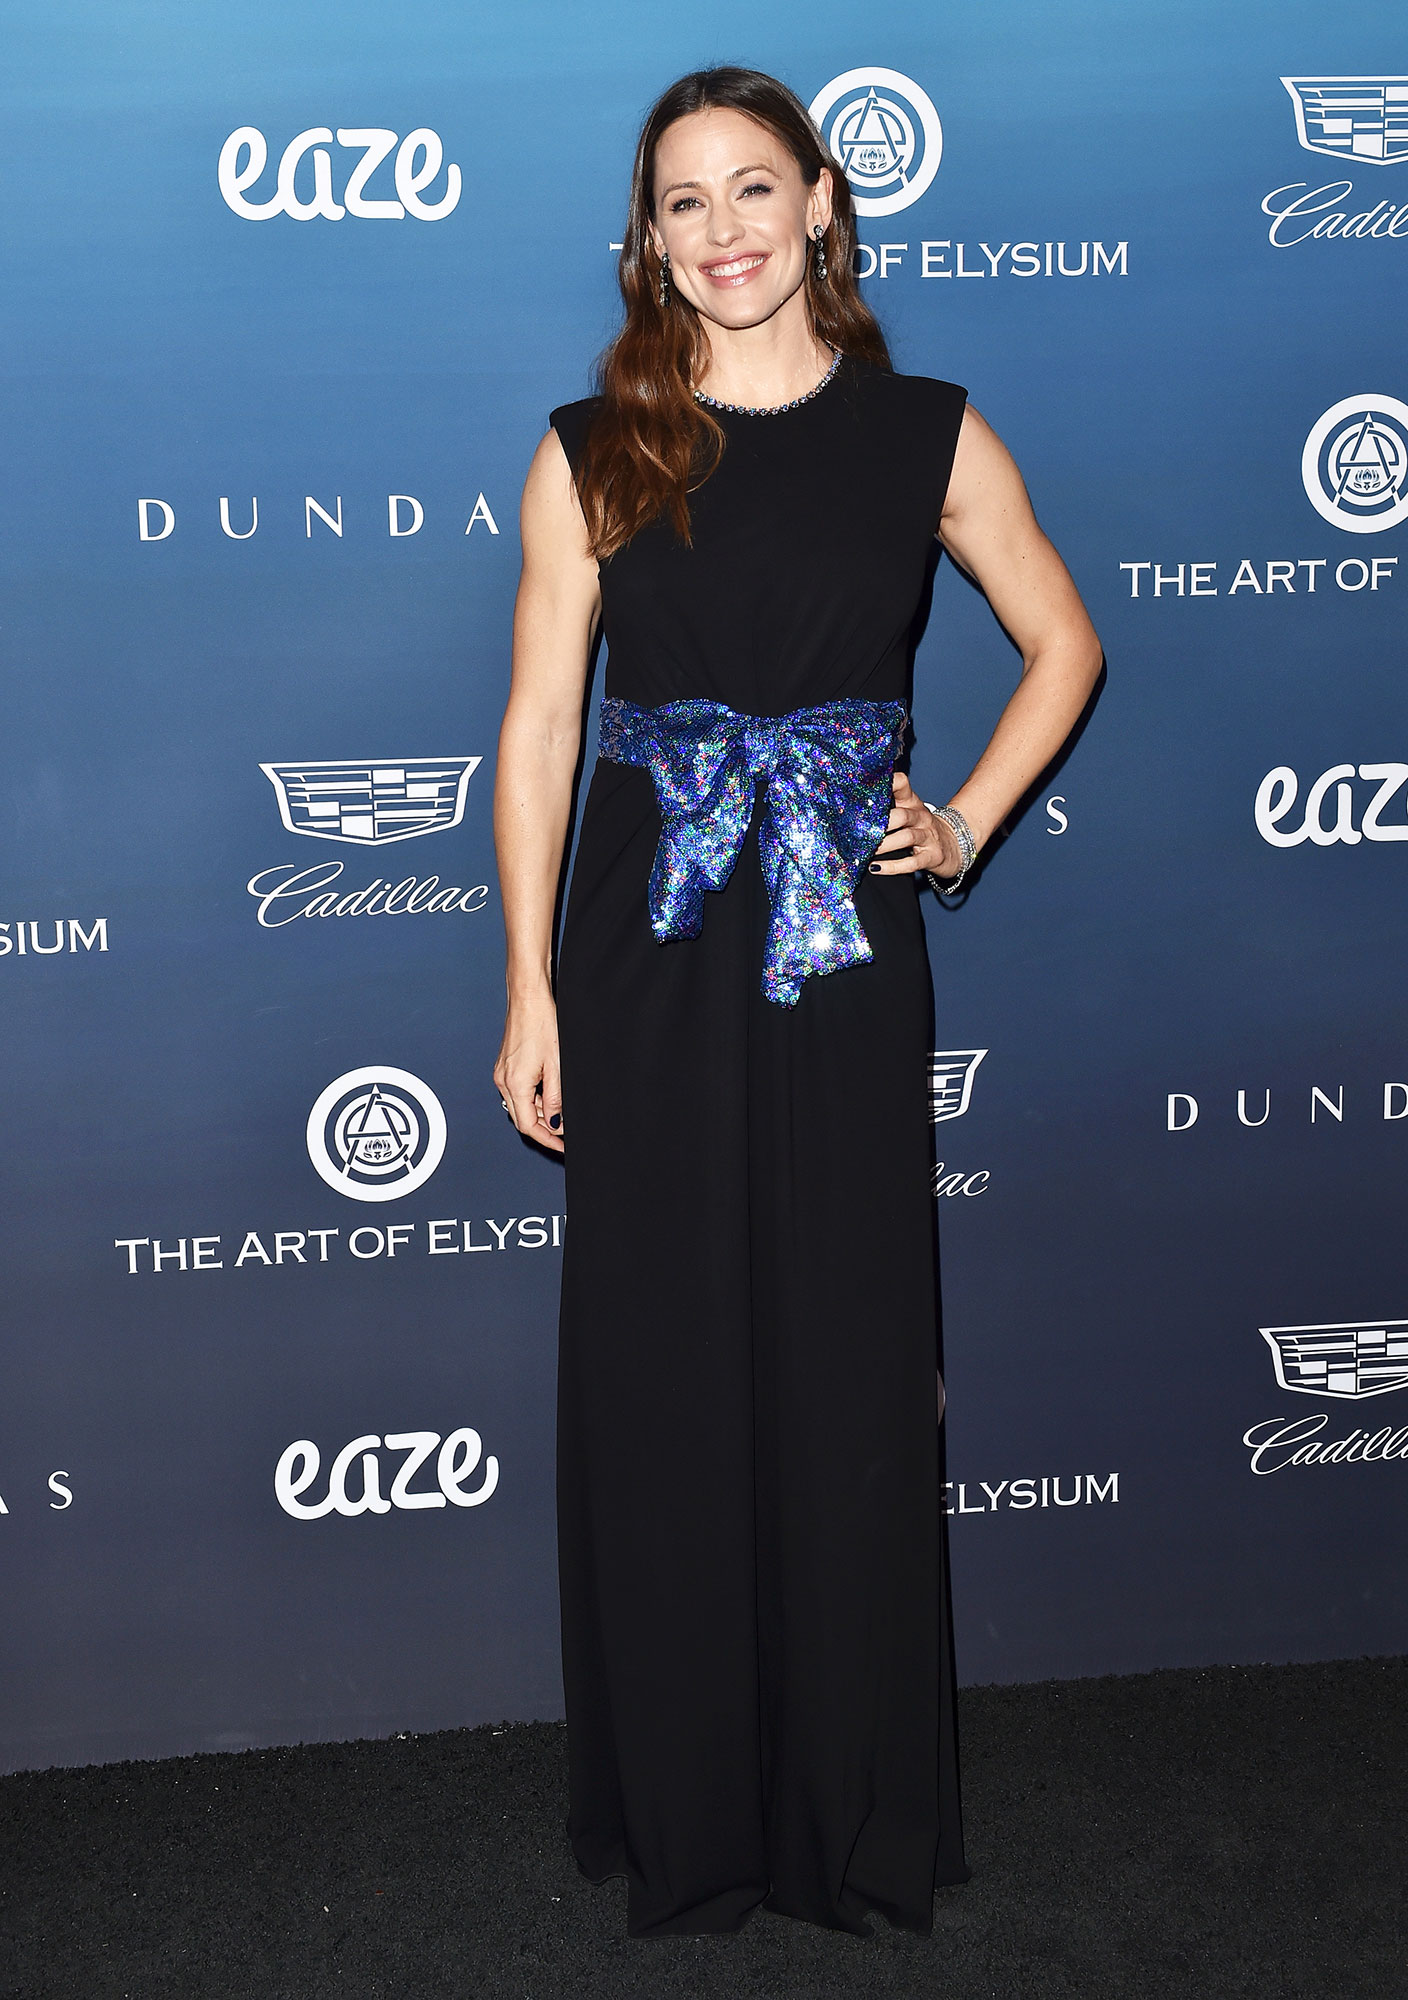 Jennifer Garner black dress glitter belt The Art of Elysium's 12th Annual Celebration - Heaven - The actress added a bit of sparkle to her black jumpsuit with a blue sequined bow at the 2019 Art of Elysium Celebration in L.A.